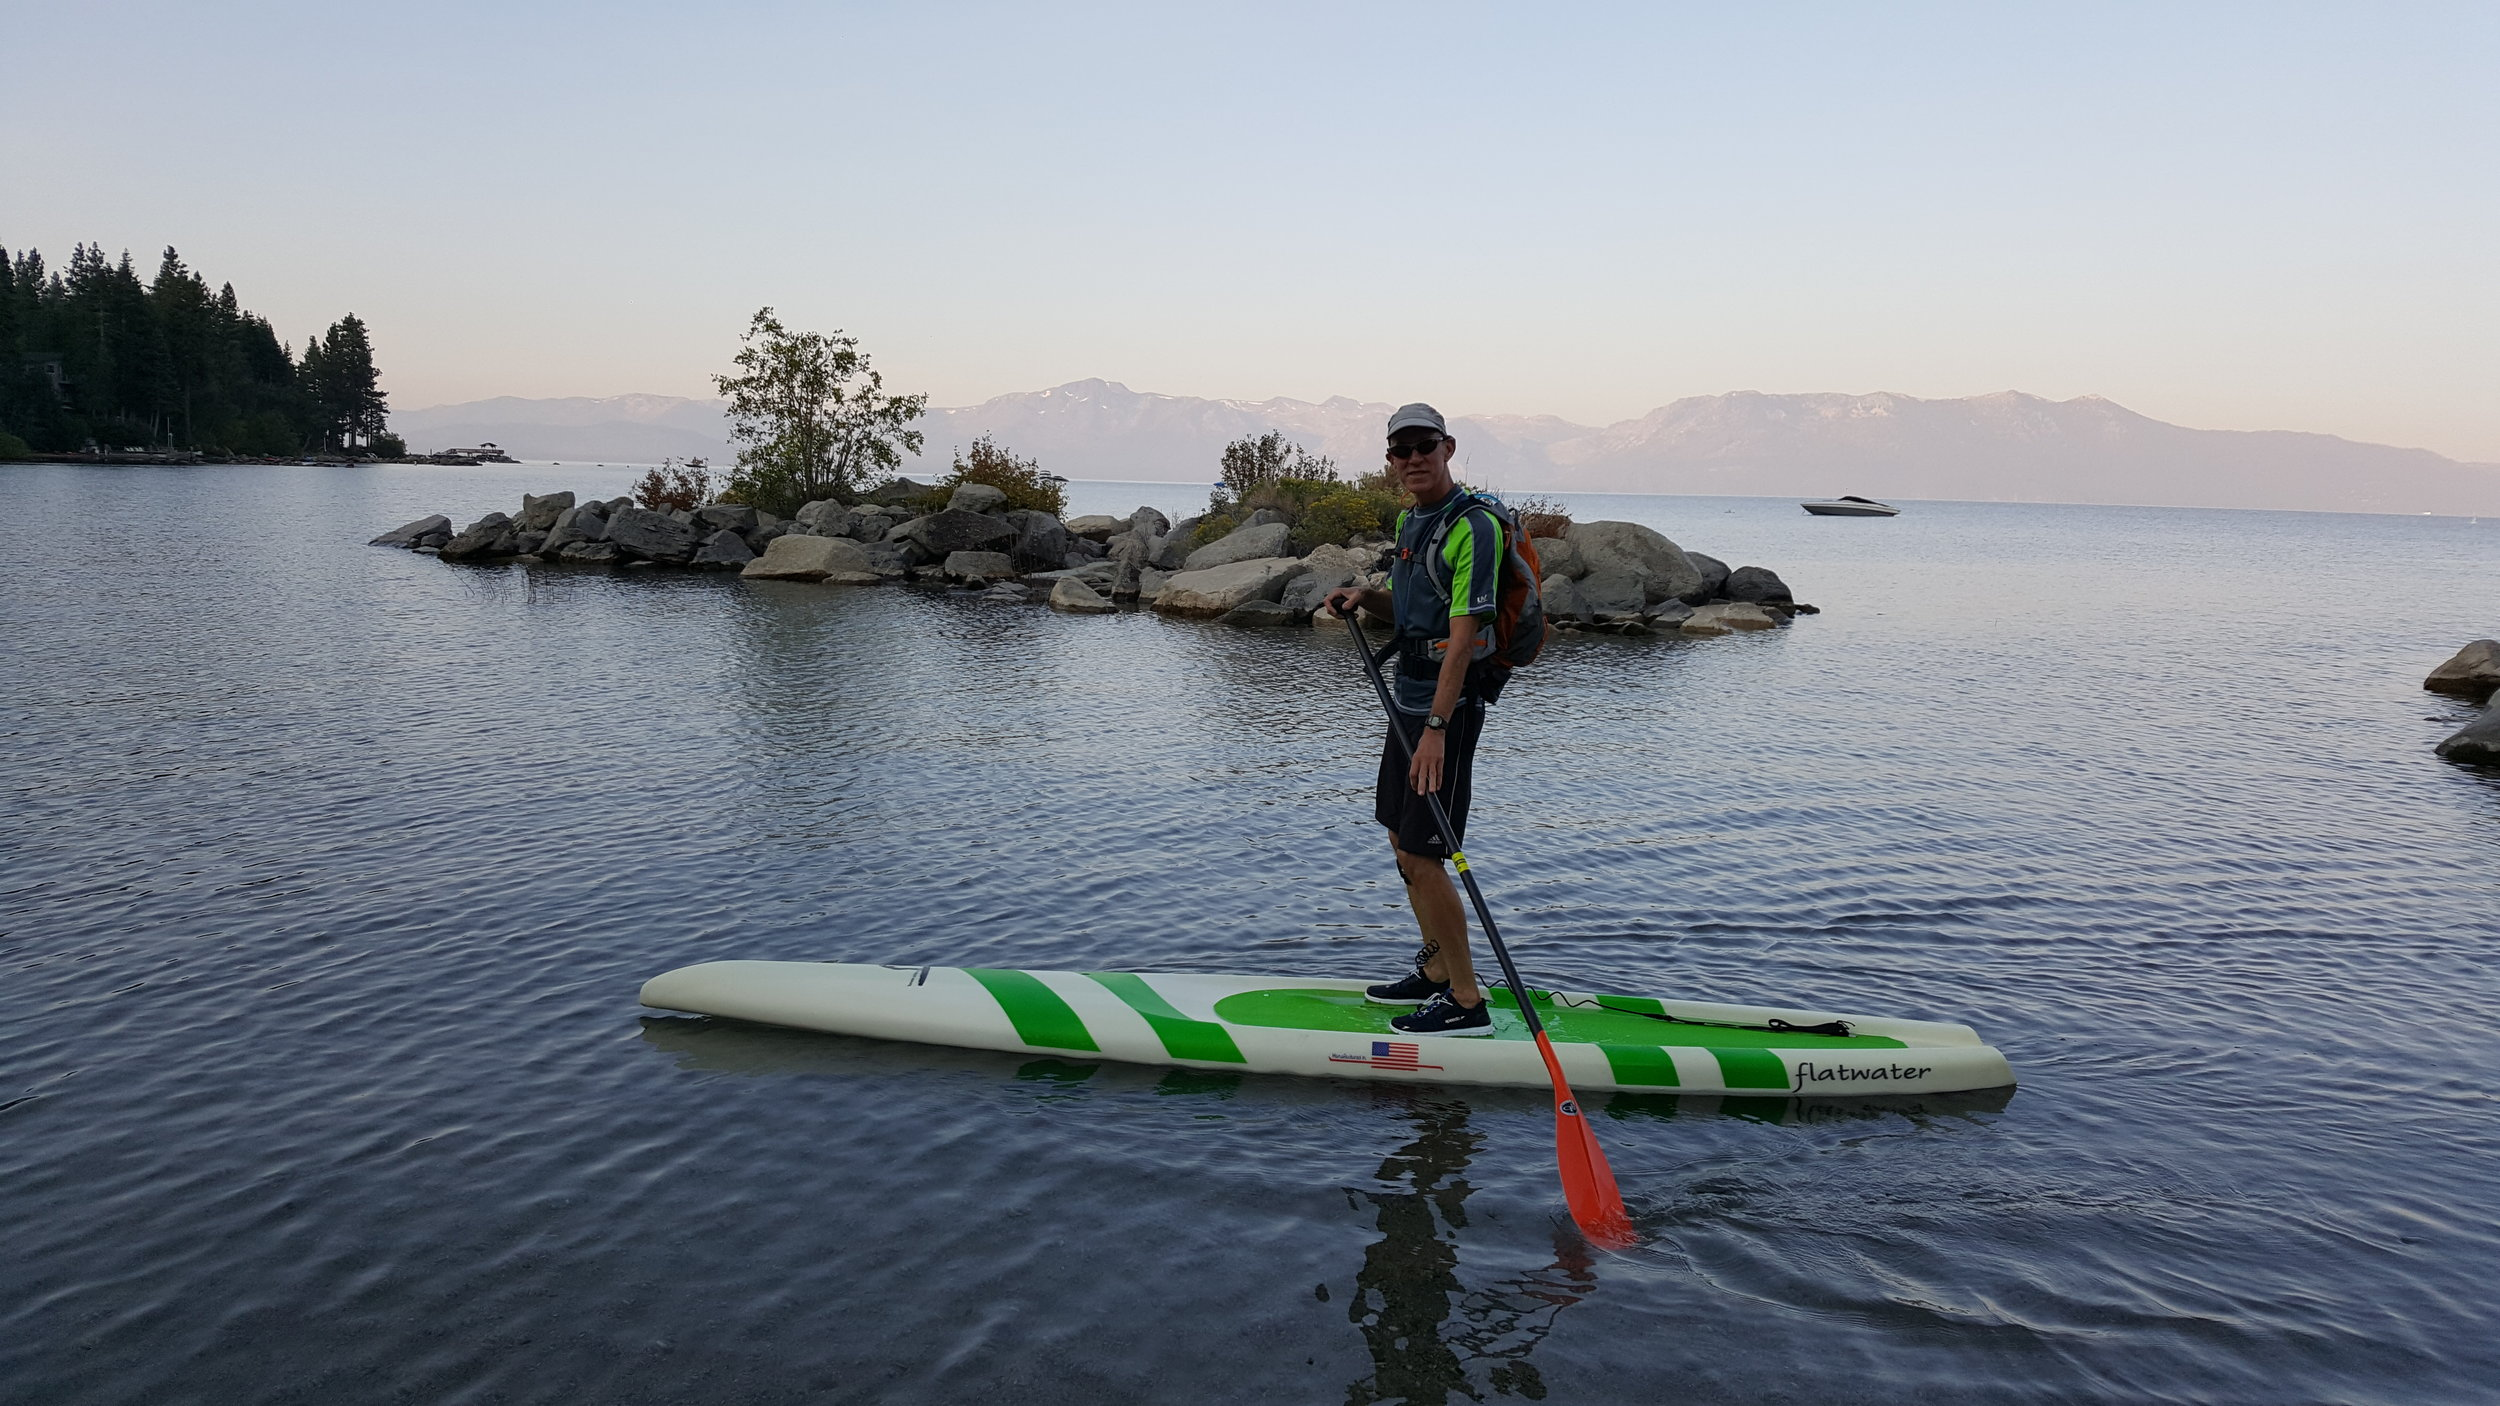 Mike's Paddle Intro to SUP Instructor Tom Logue at Cave Rock Put-induring his circumnavigation of Lake Tahoe in 2017.